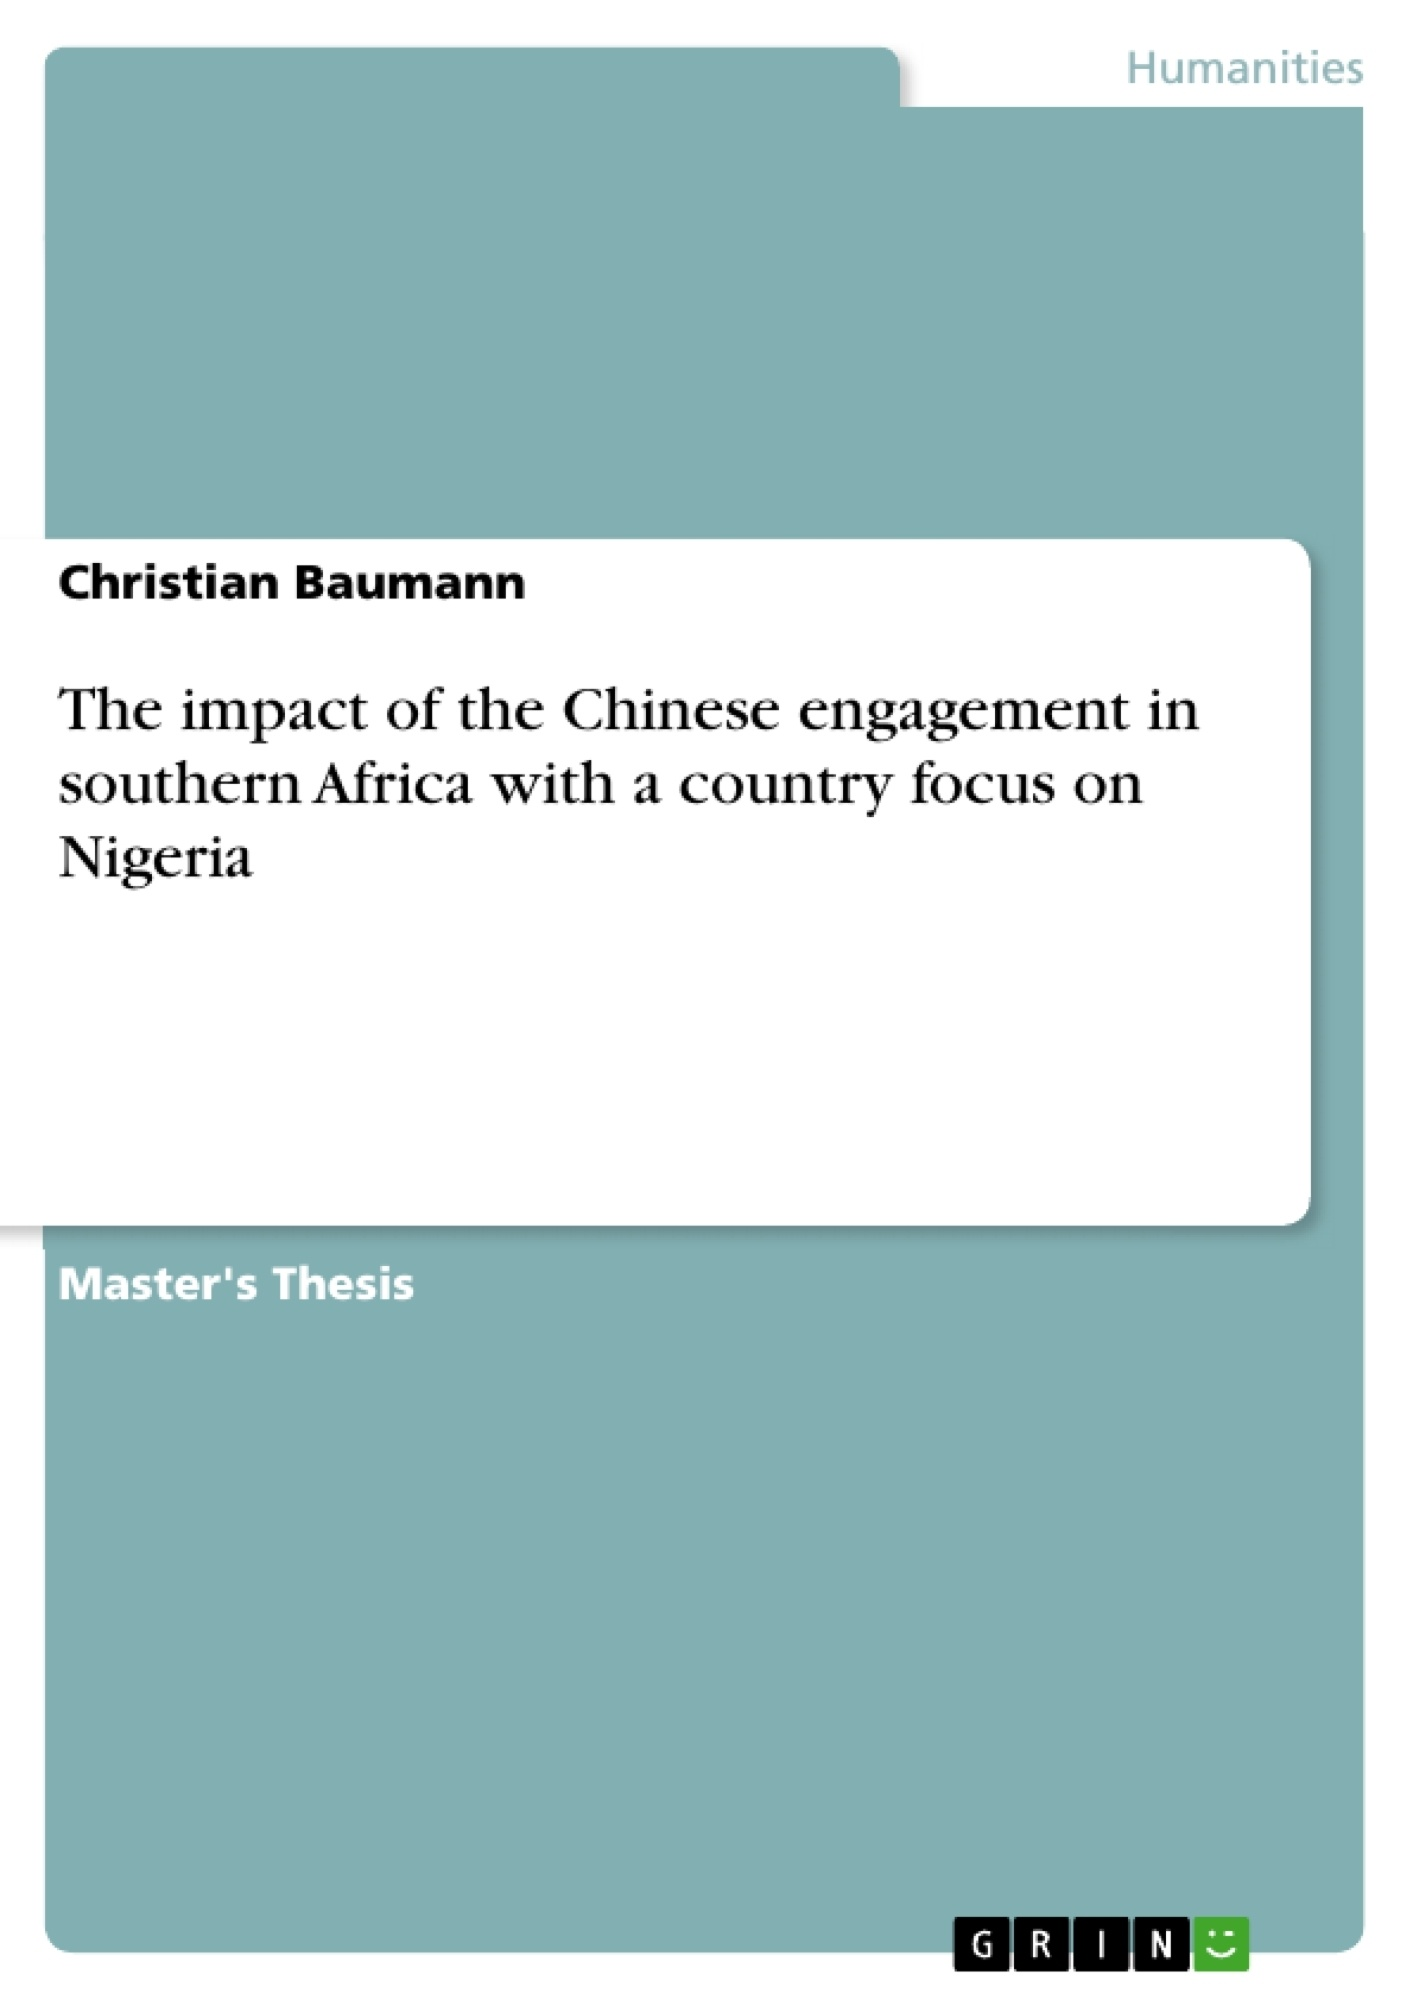 Title: The impact of the Chinese engagement in southern Africa with a country focus on Nigeria